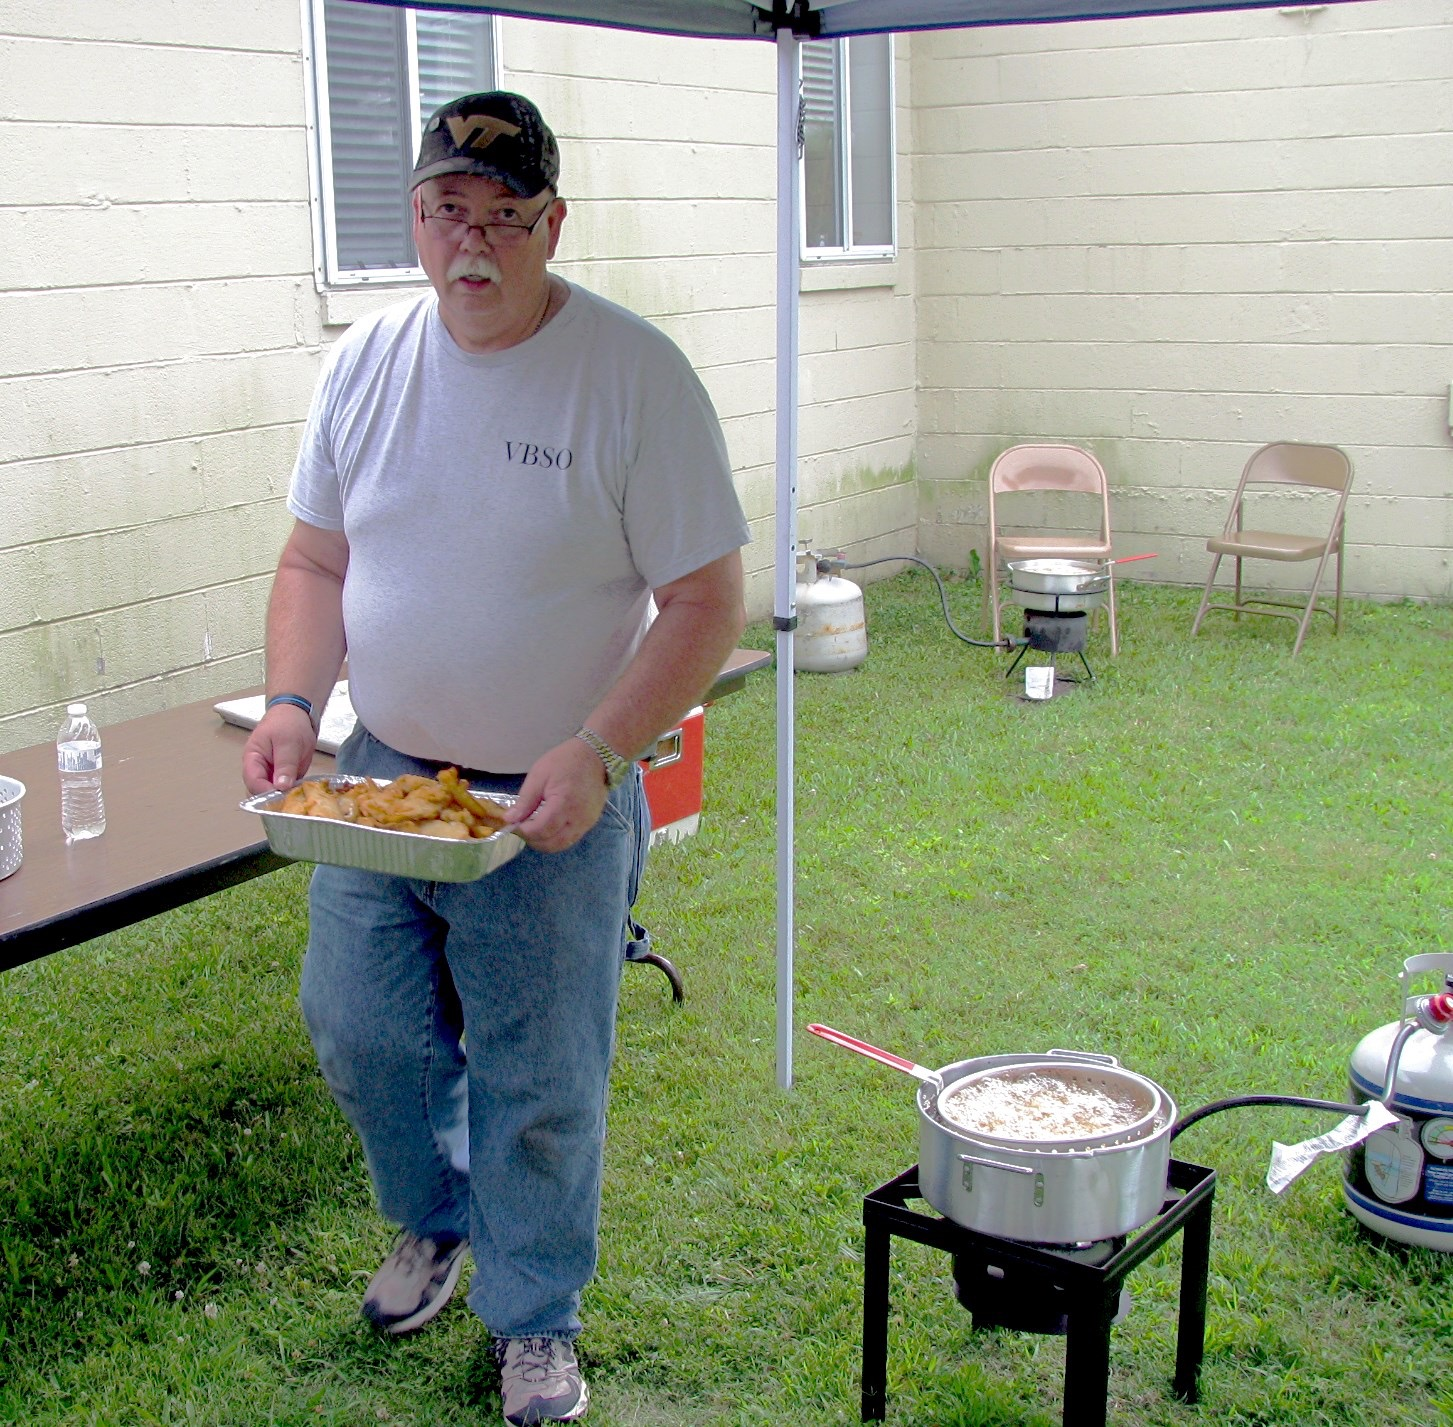 the men's church-wide community fish-fry - A man's work is never done!